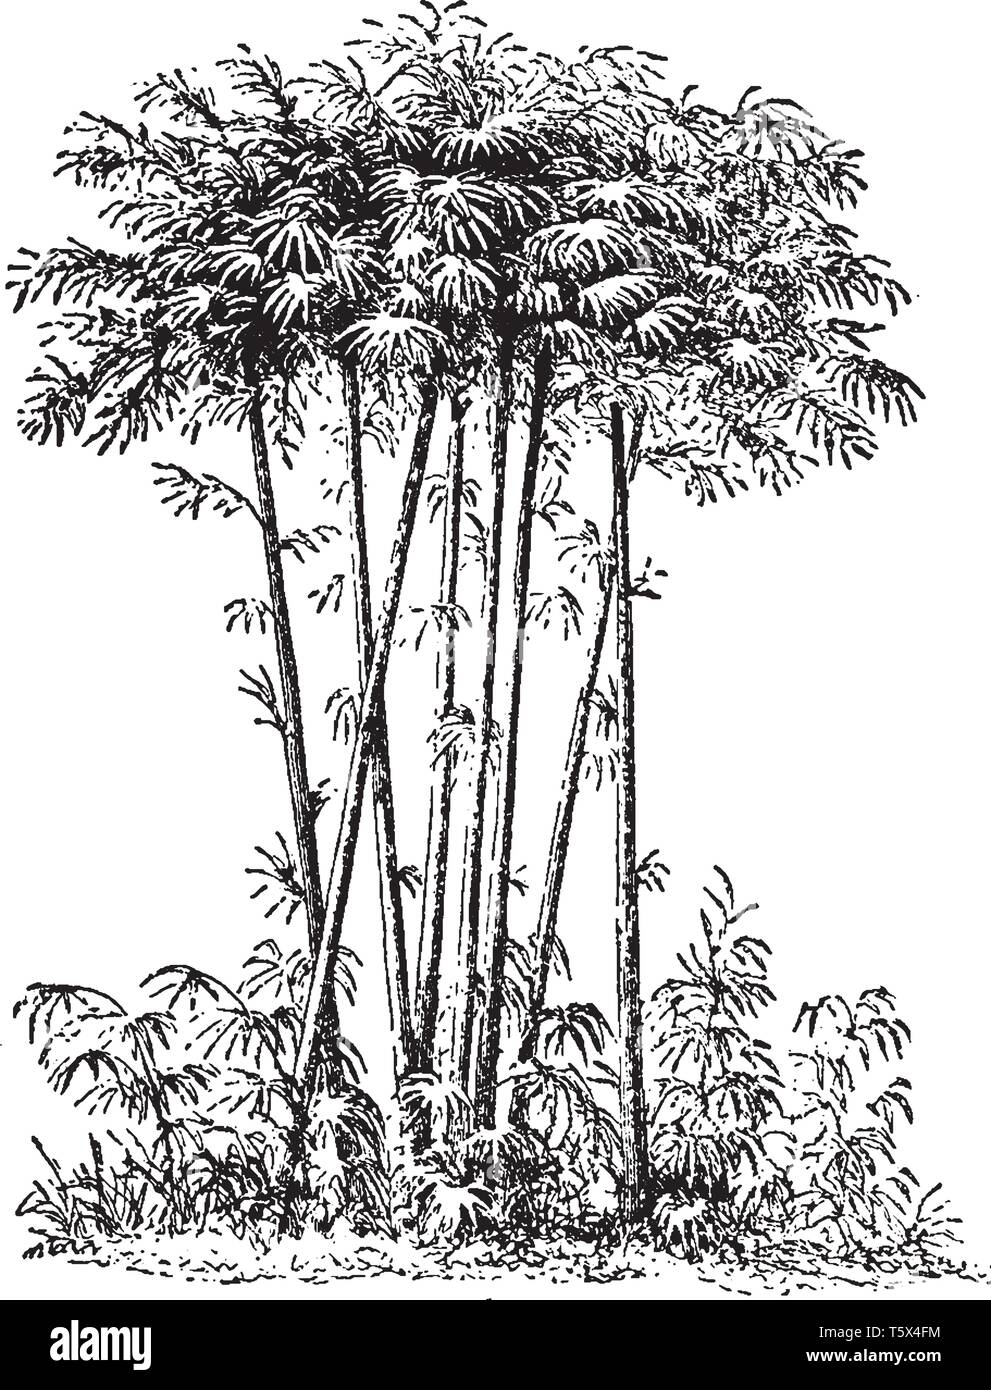 The two general patterns for the growth of bamboo are 'clumping' and 'running'. Bamboos are evergreen plants in the true grass family Poaceae and occu - Stock Vector